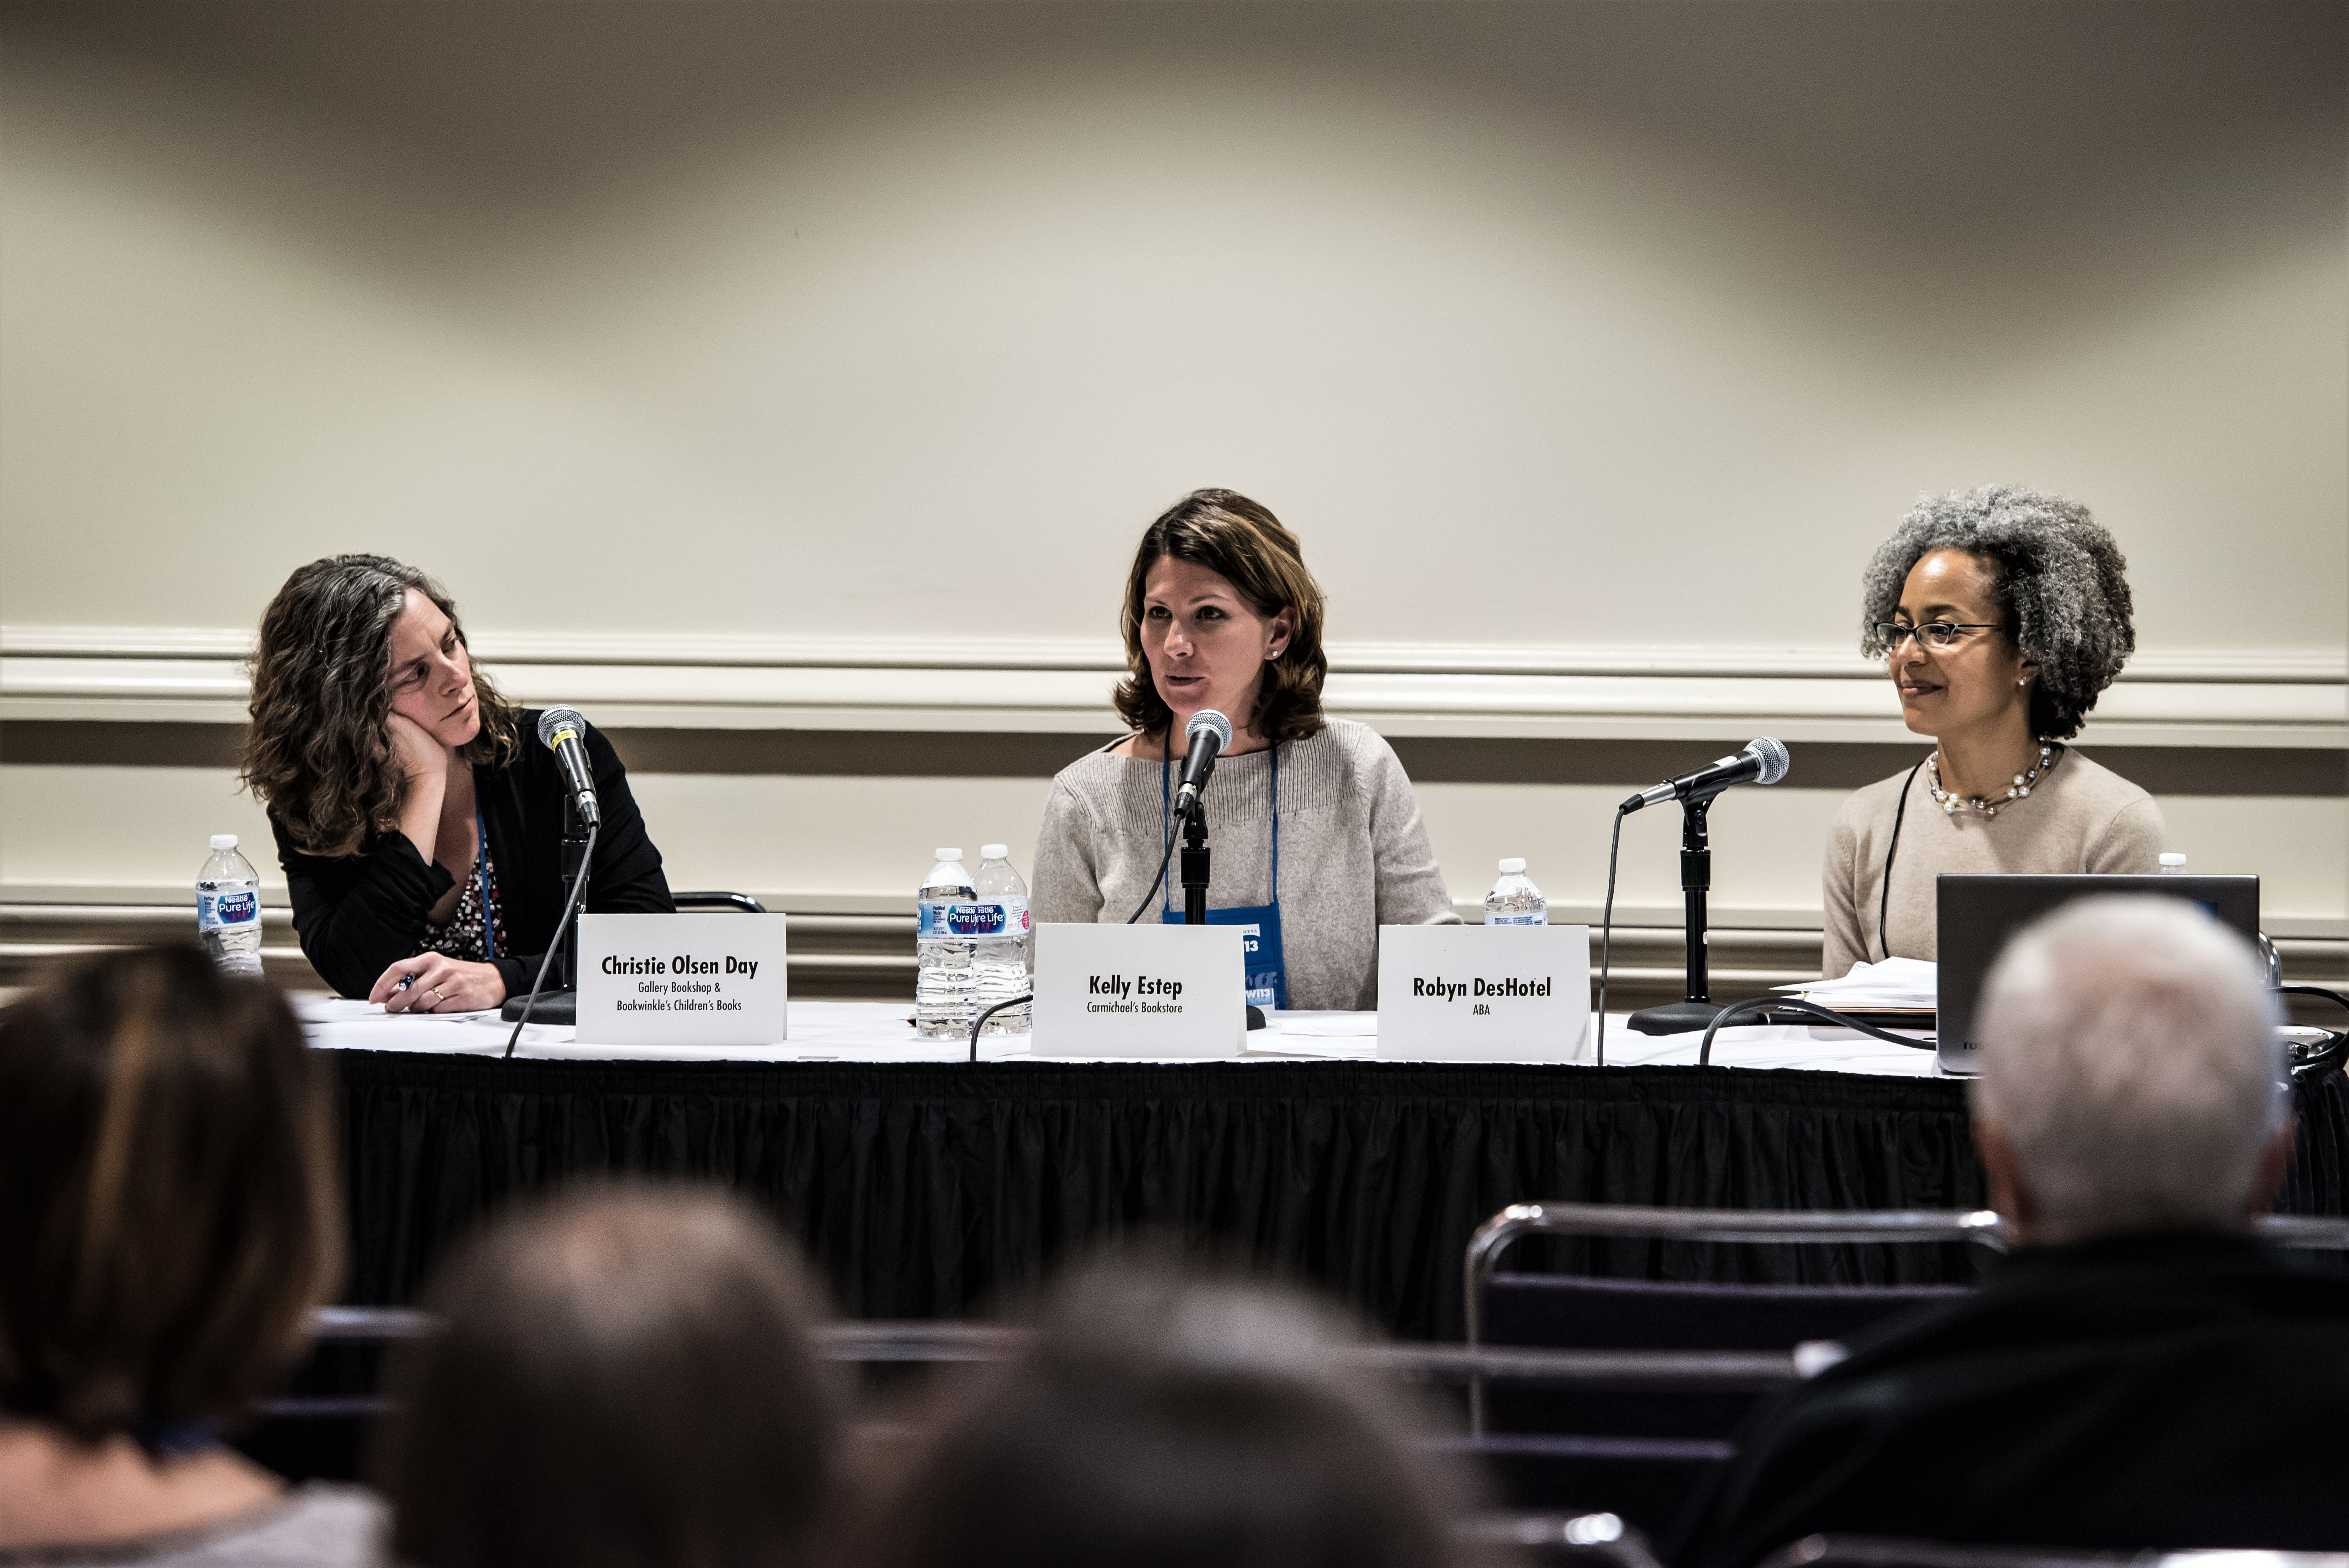 Booksellers Christie Olsen Day and Kelly Estep lead an educational session with ABA's Robyn DesHotel.